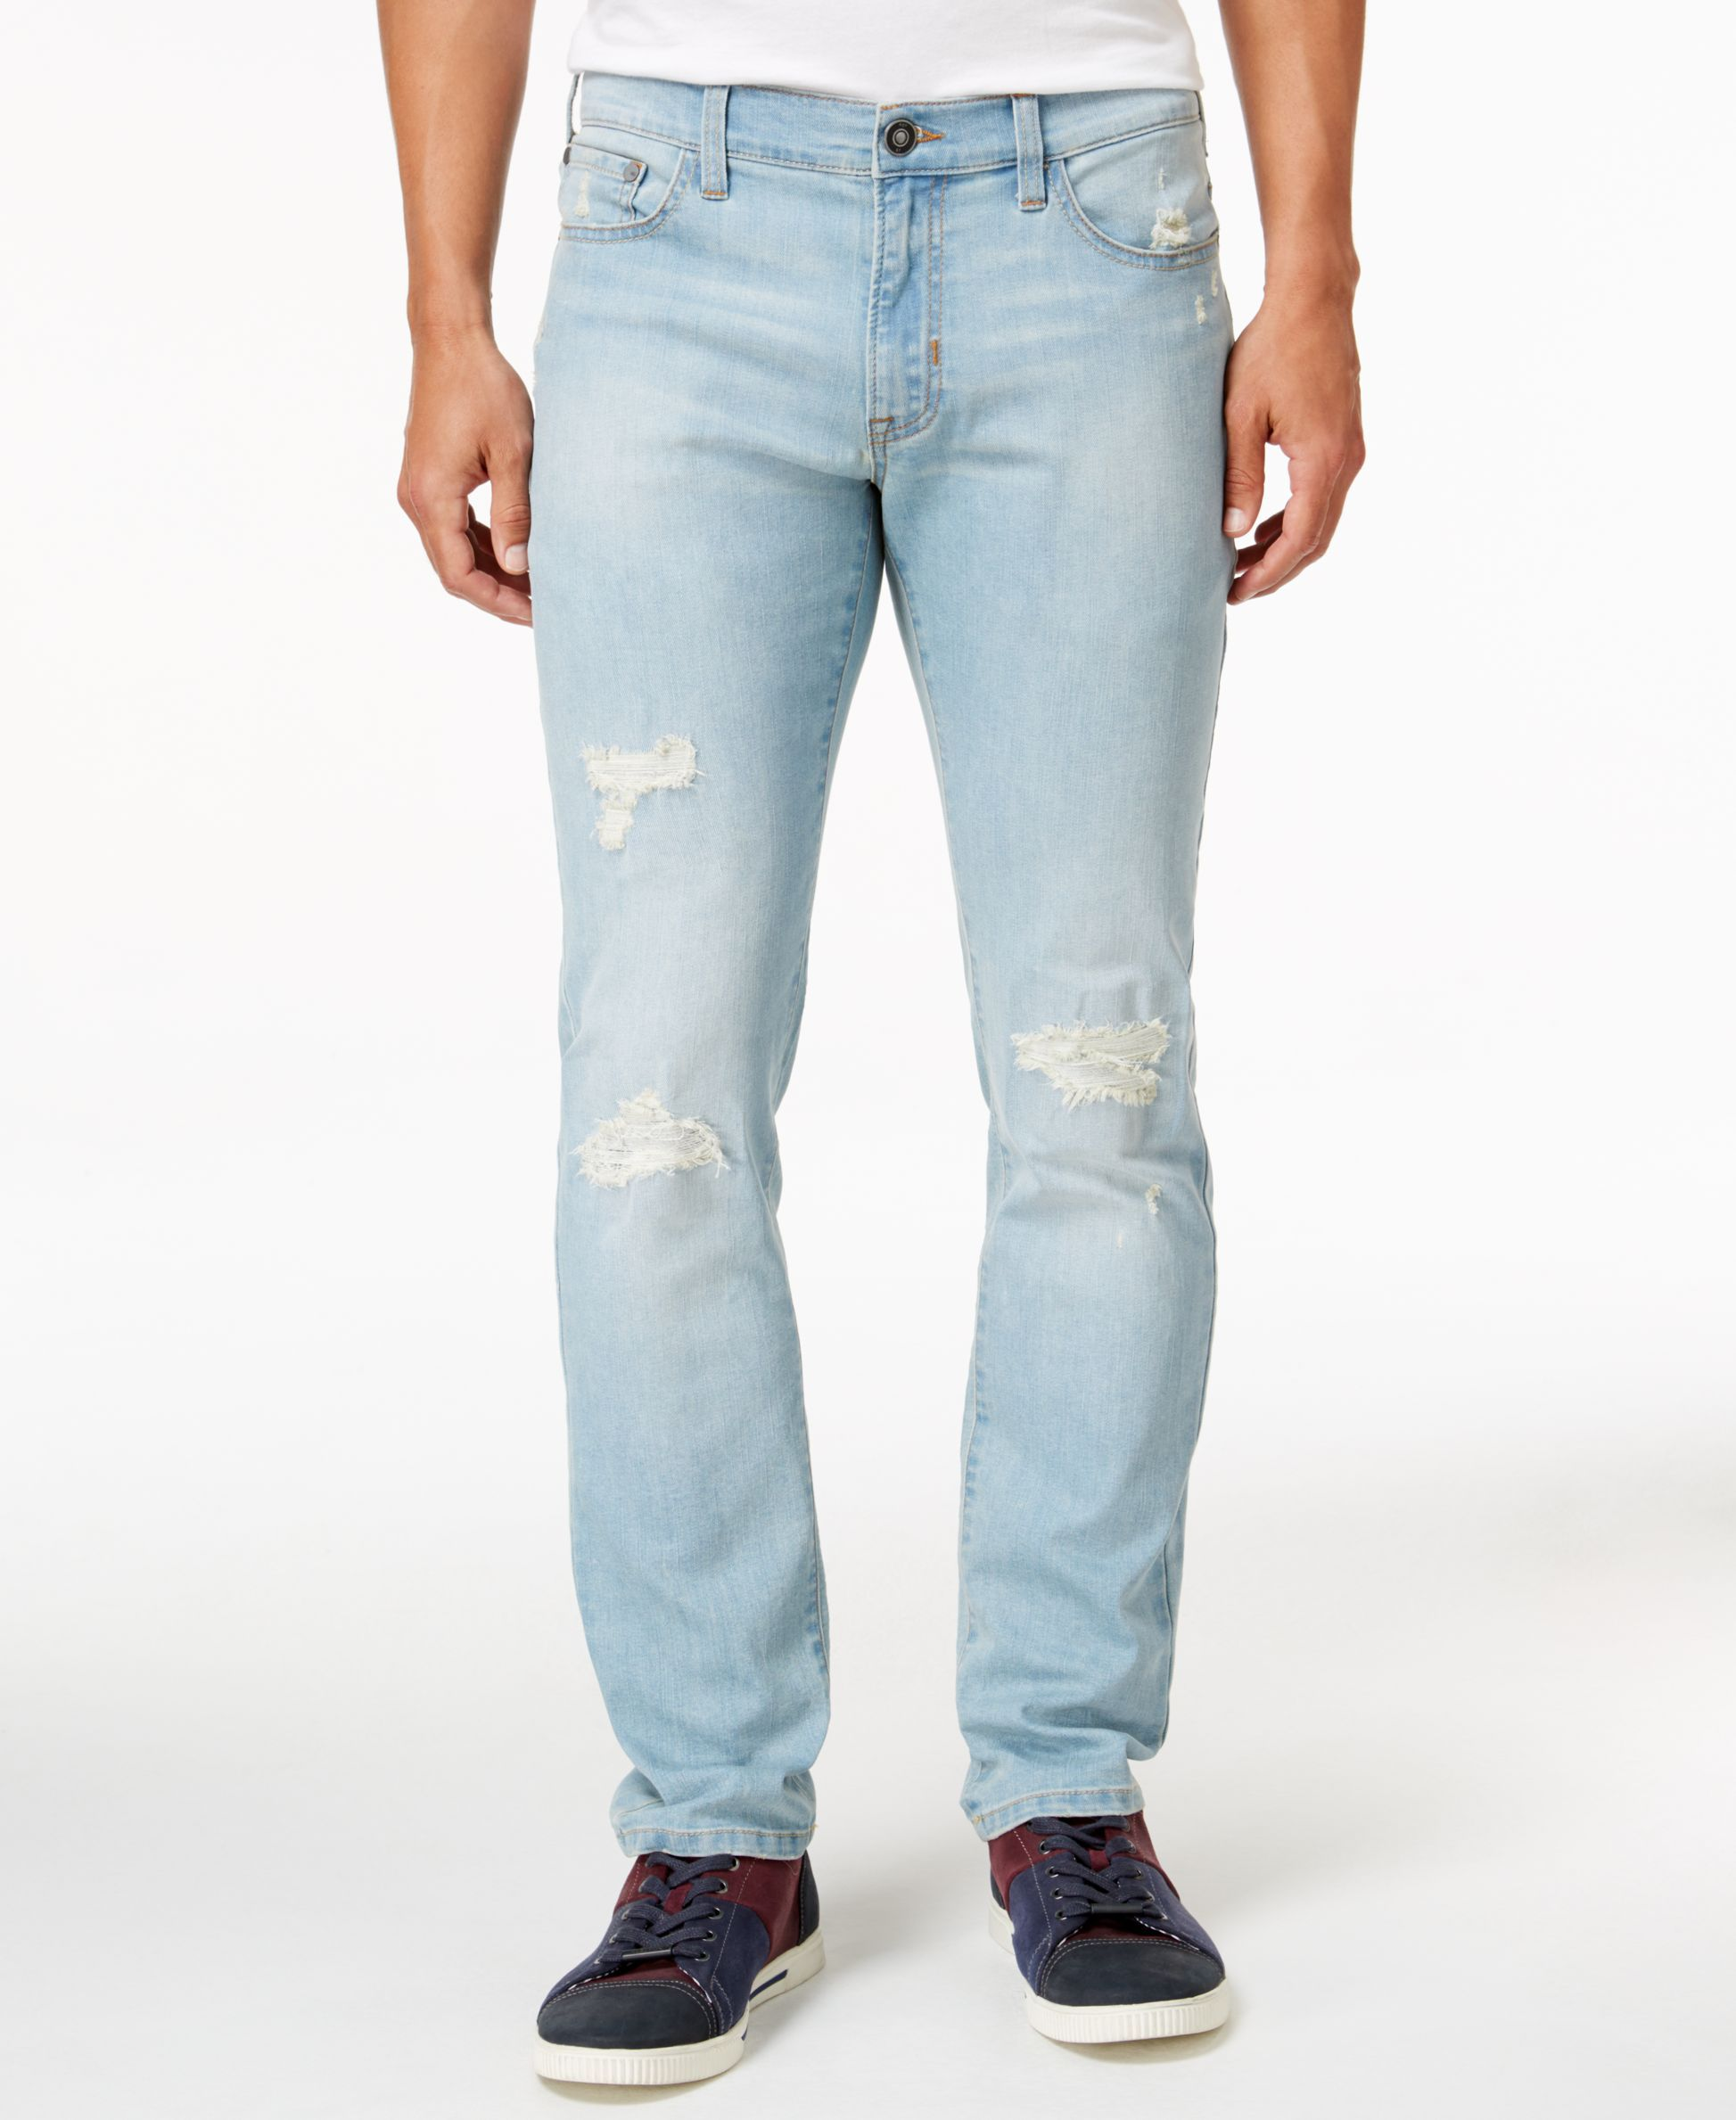 4968898c9 Ring of Fire Men's Slim-Fit Cayenne Skylar Wash Jeans | Products ...